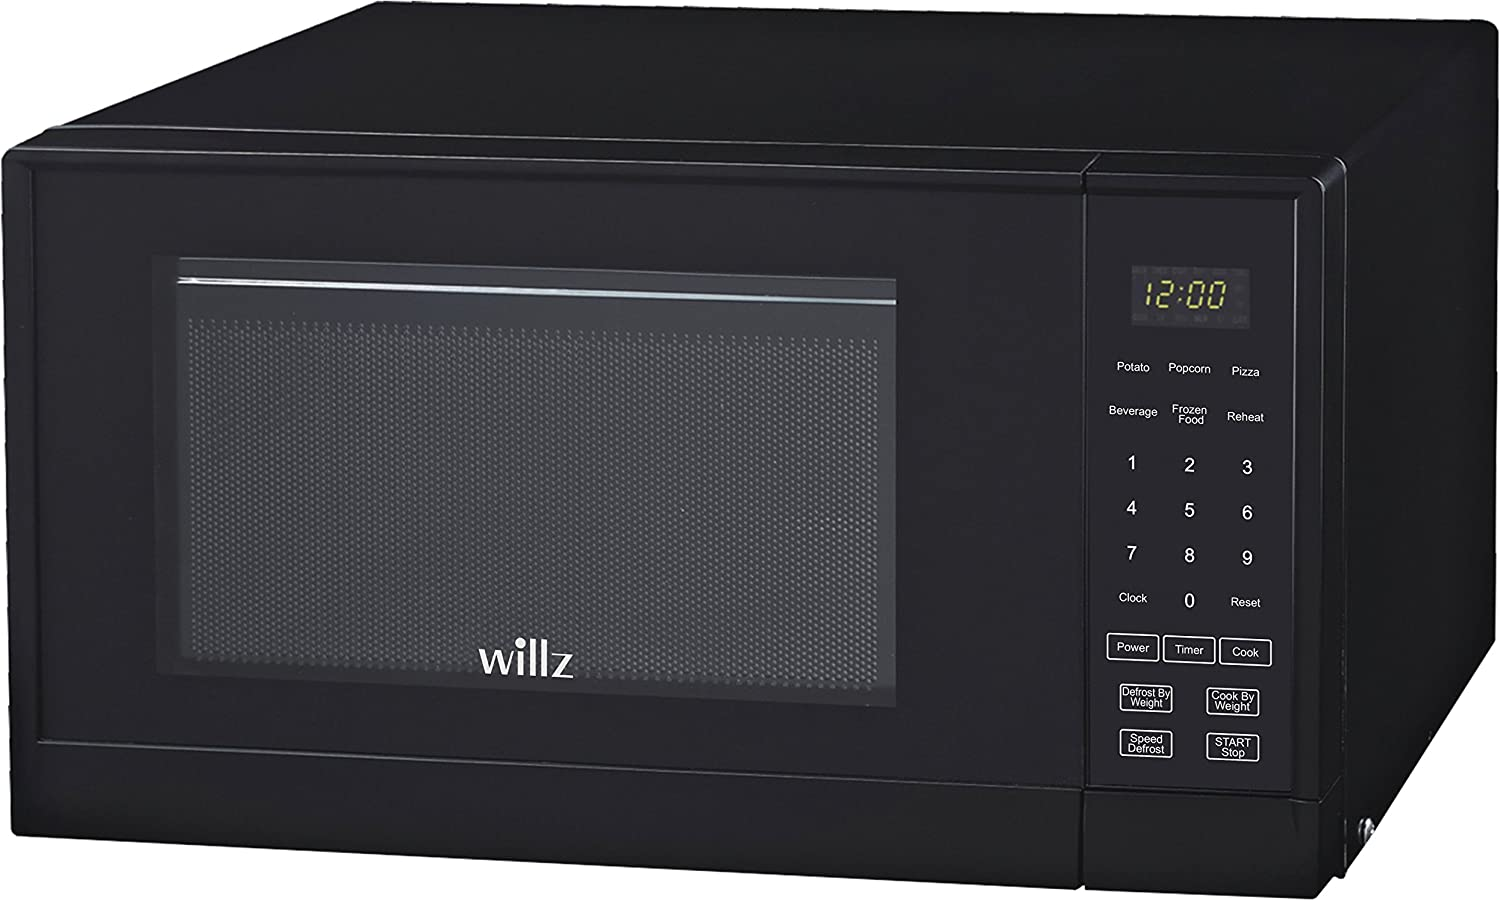 Willz WLCMSR09BK-09 Black 0.9 cu ft Microwave